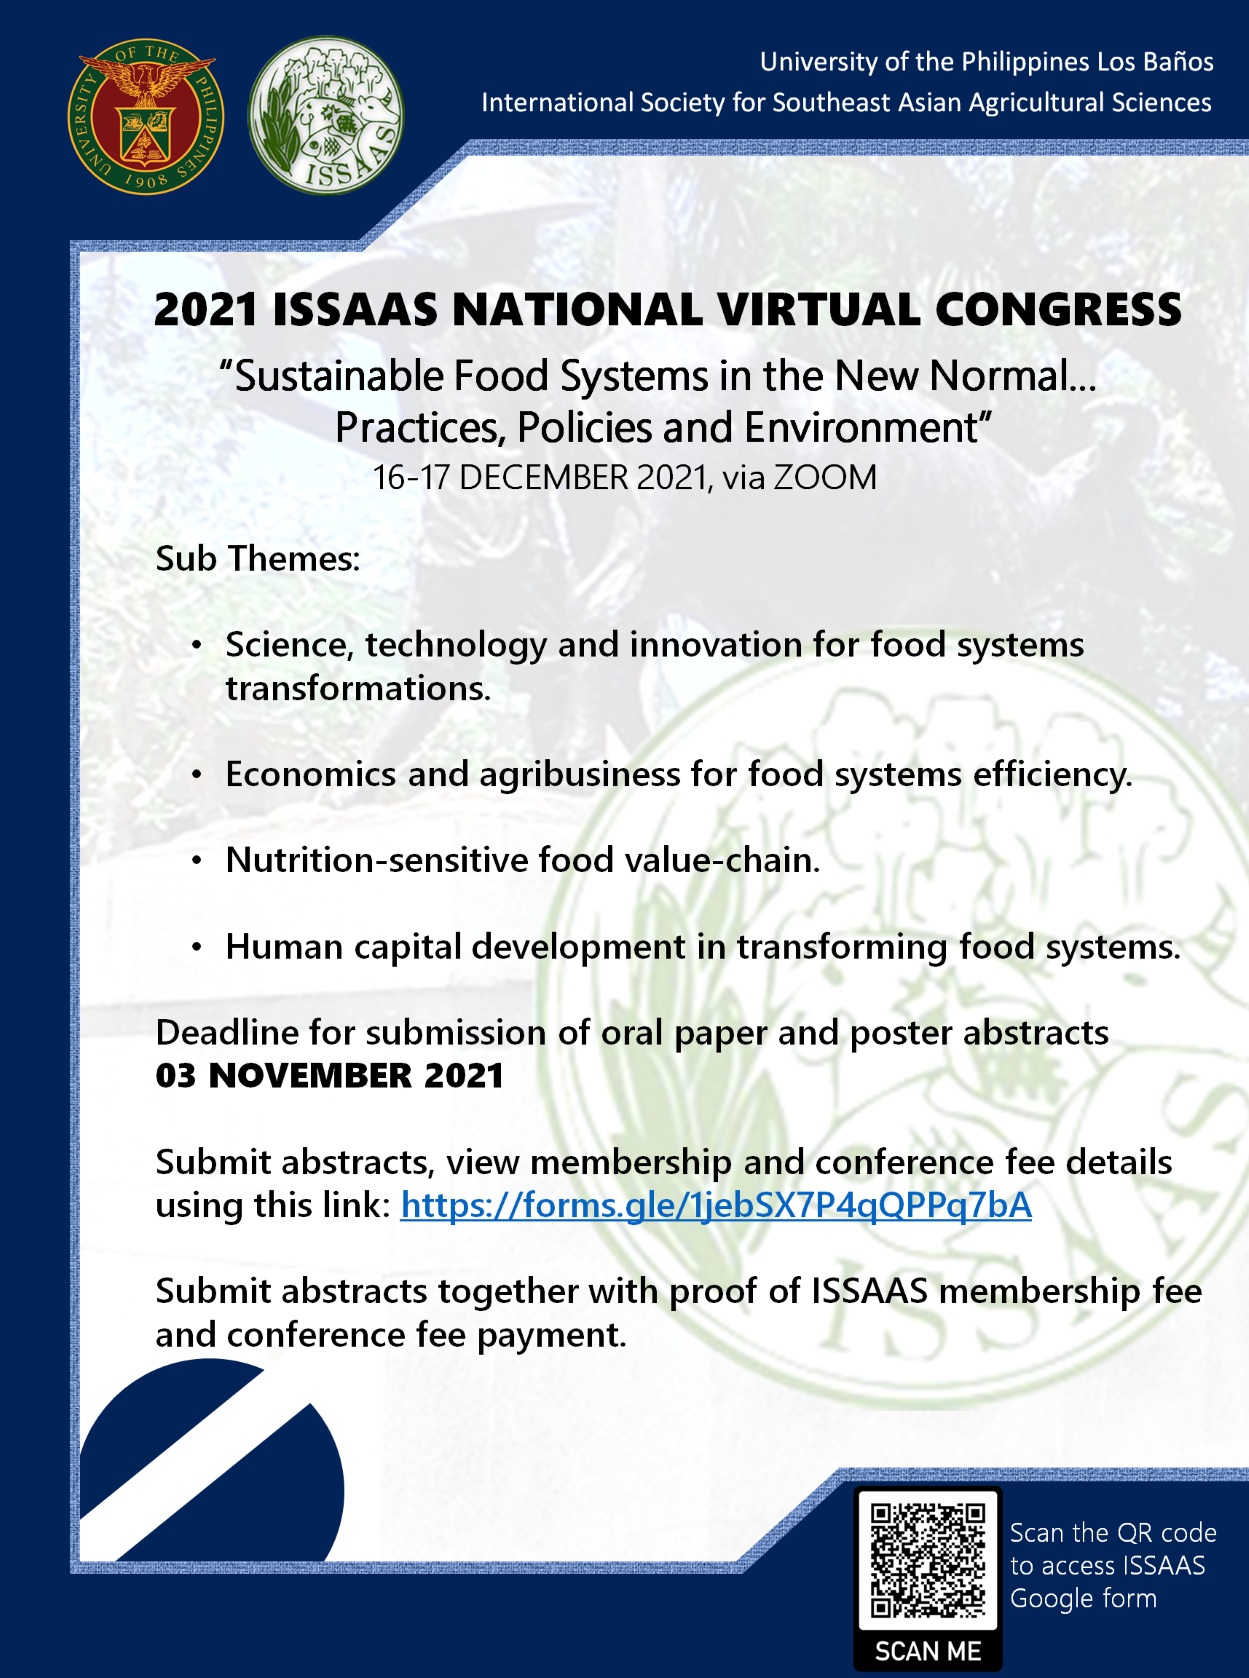 2021 ISSAAS National Congress - First Announcement resized